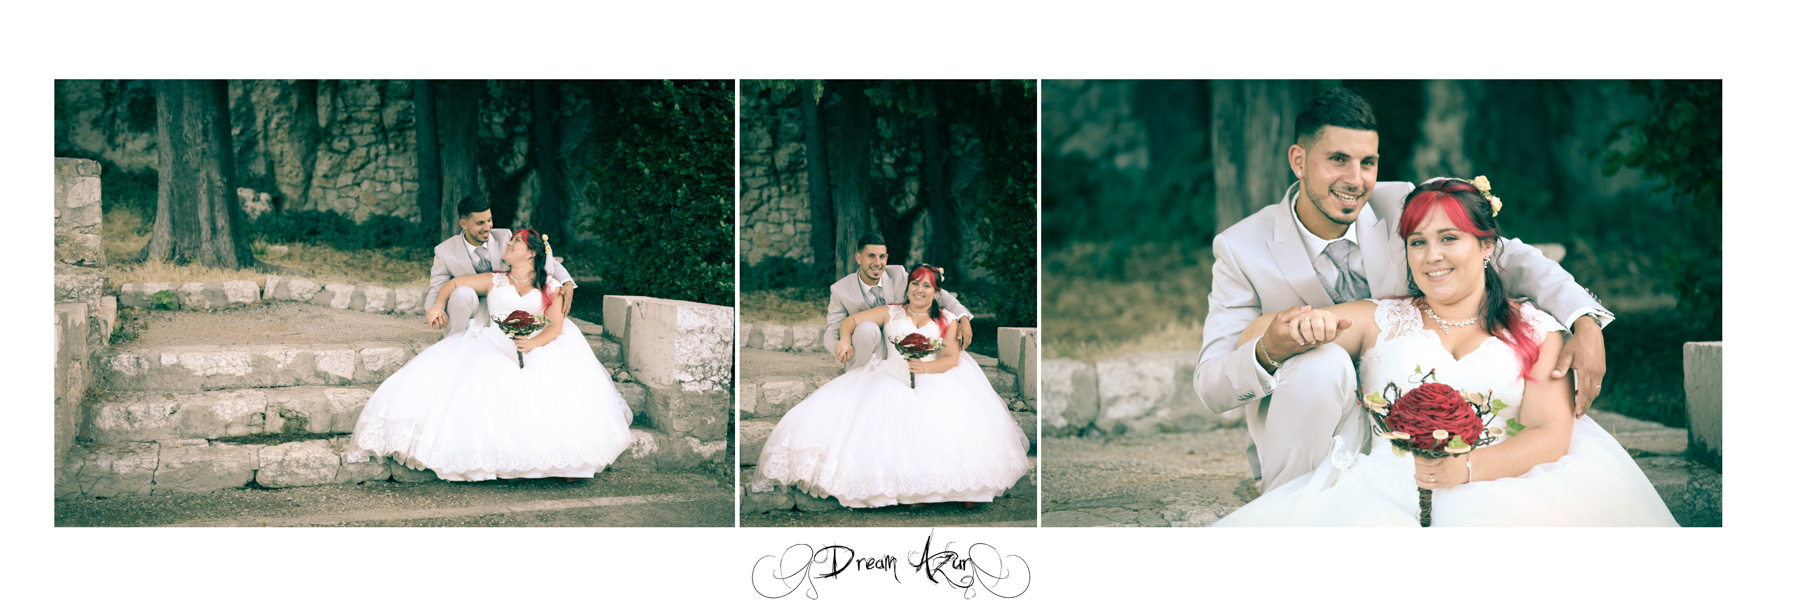 190824COMPO-Mariage-Cindy-et-Anthony-69